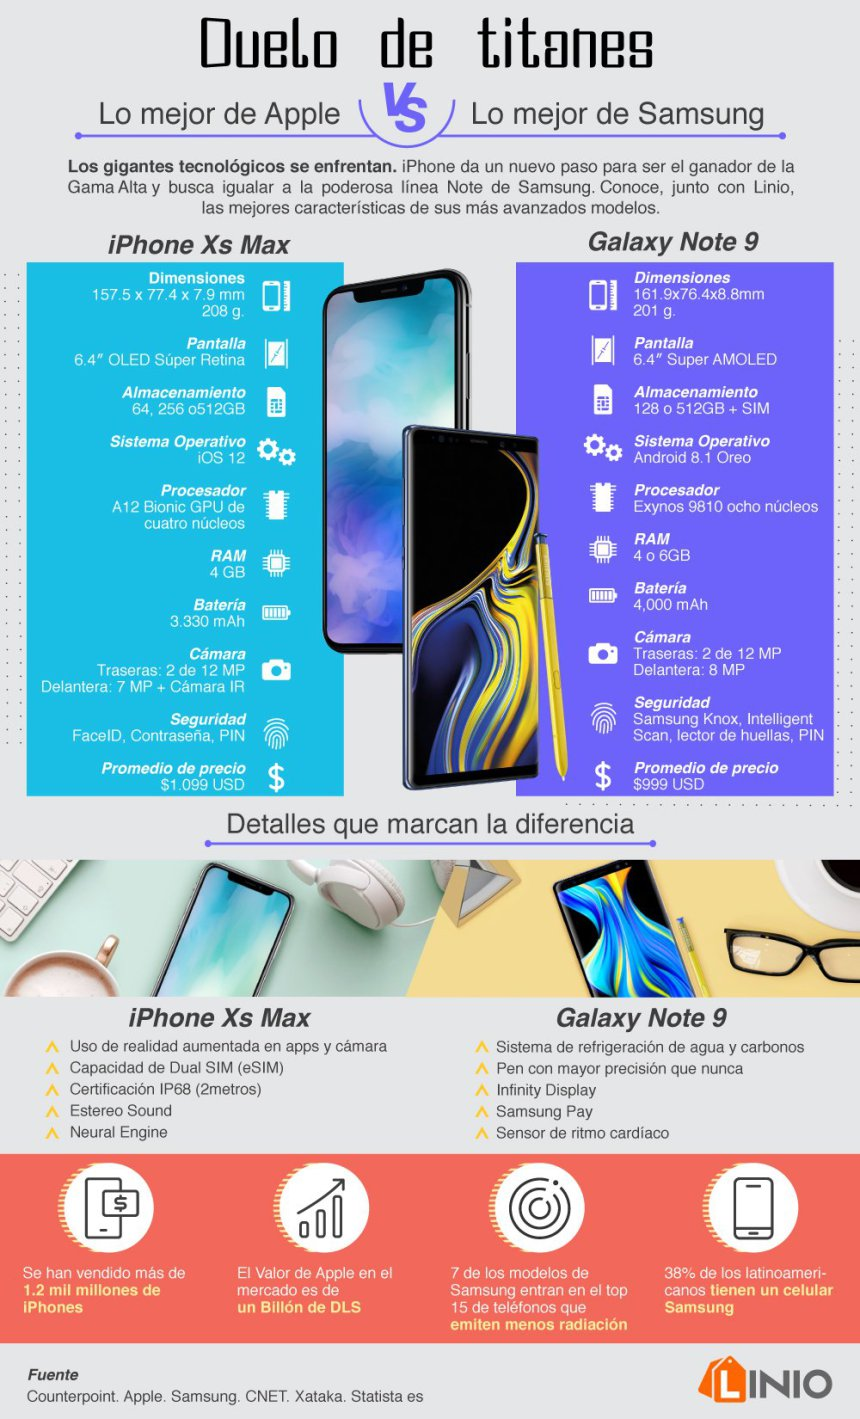 iPhone Xs Max vs Galaxy Note 9 #infografia #infographic #apple